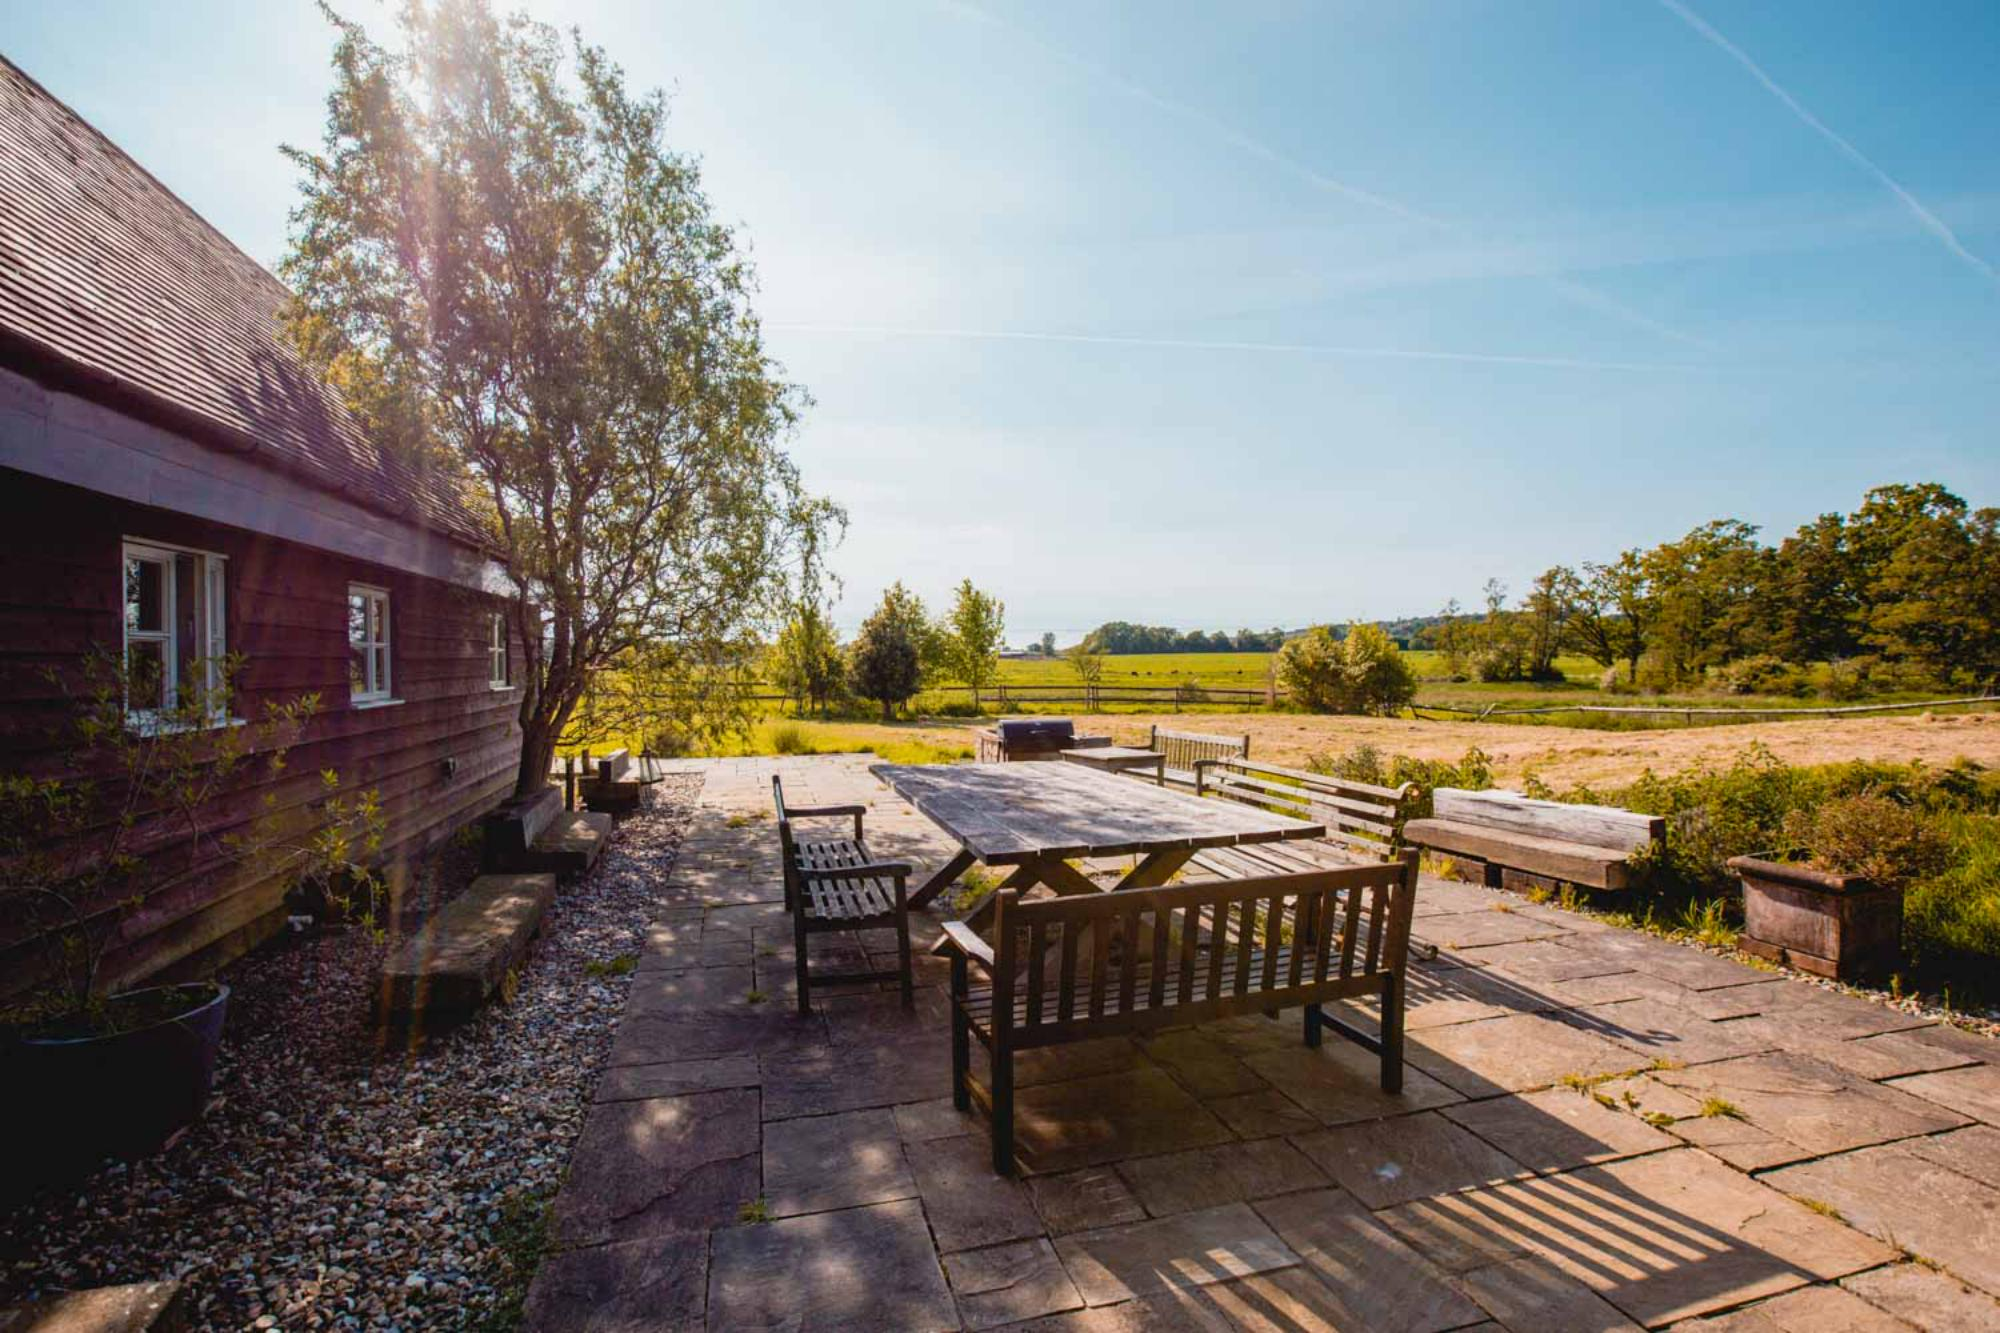 Self-Catering in West Sussex holidays at Cool Places